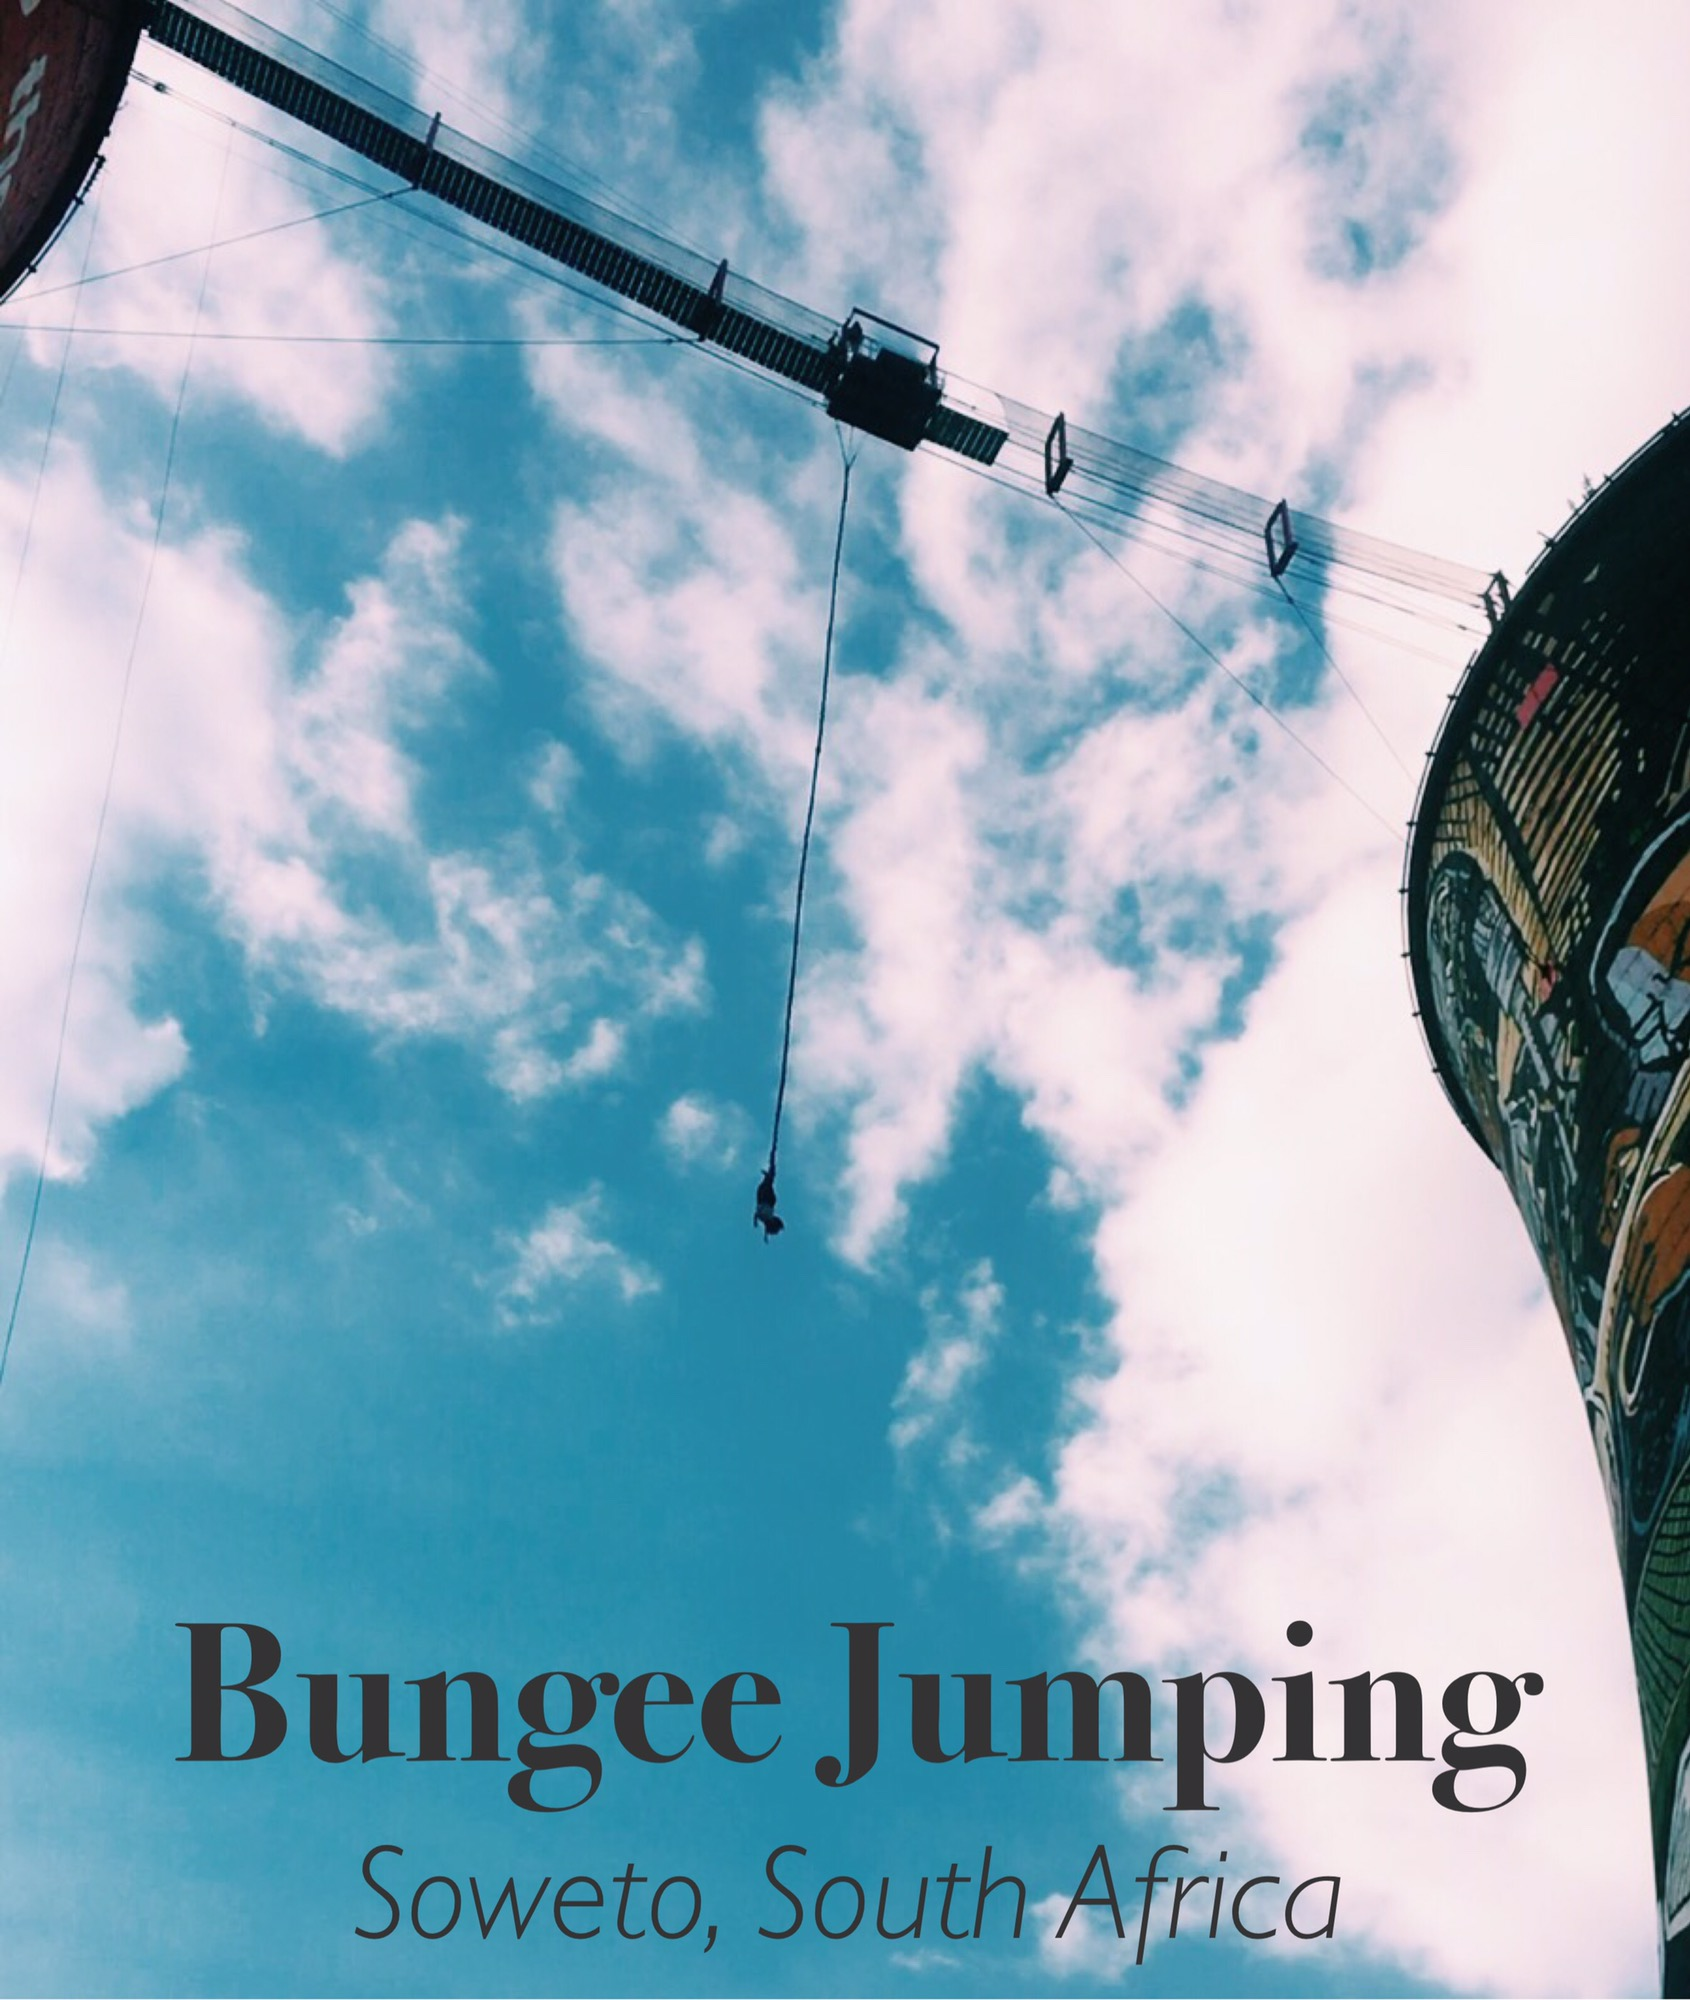 bungee jumping at the orlando towers in soweto south africa review, travel blogger, things to to in Johannesburg south africa soweto, travel blogger, south africa Johannesburg city guide, african lifestyle blogger